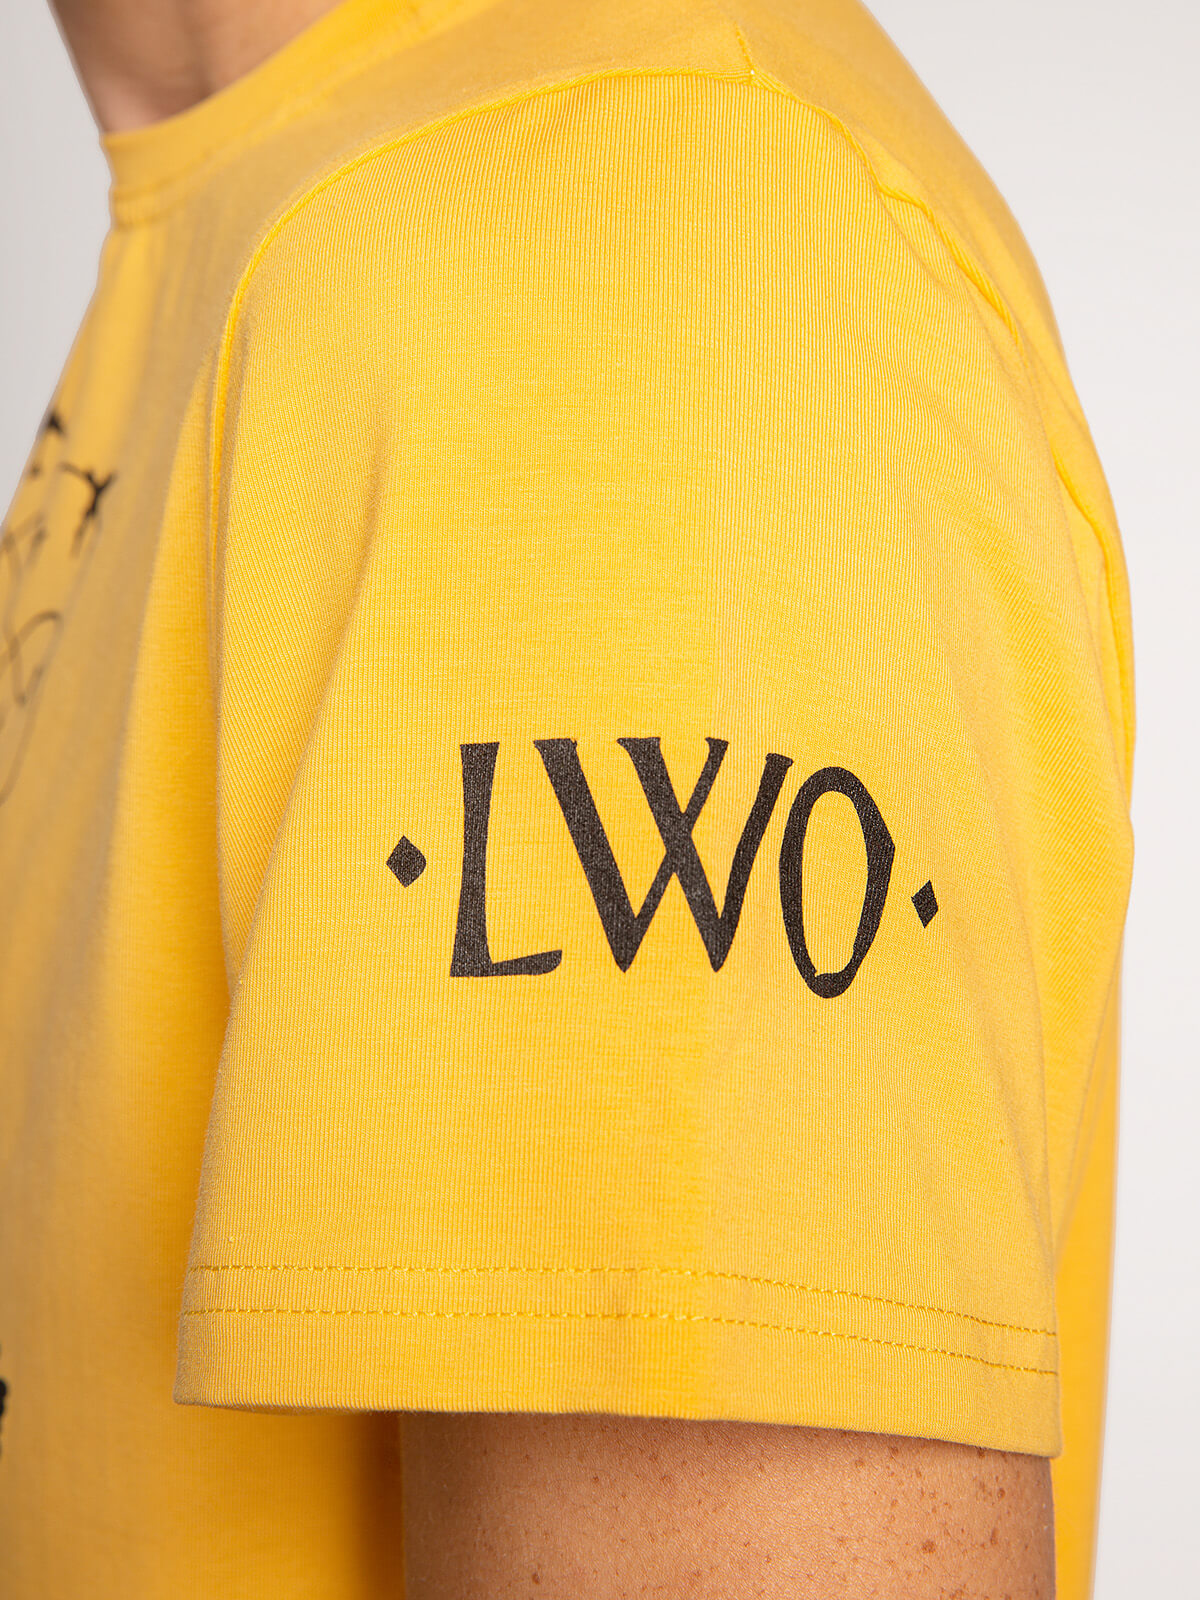 Women's T-Shirt Danylo. Color yellow.  Size worn by the model: S.